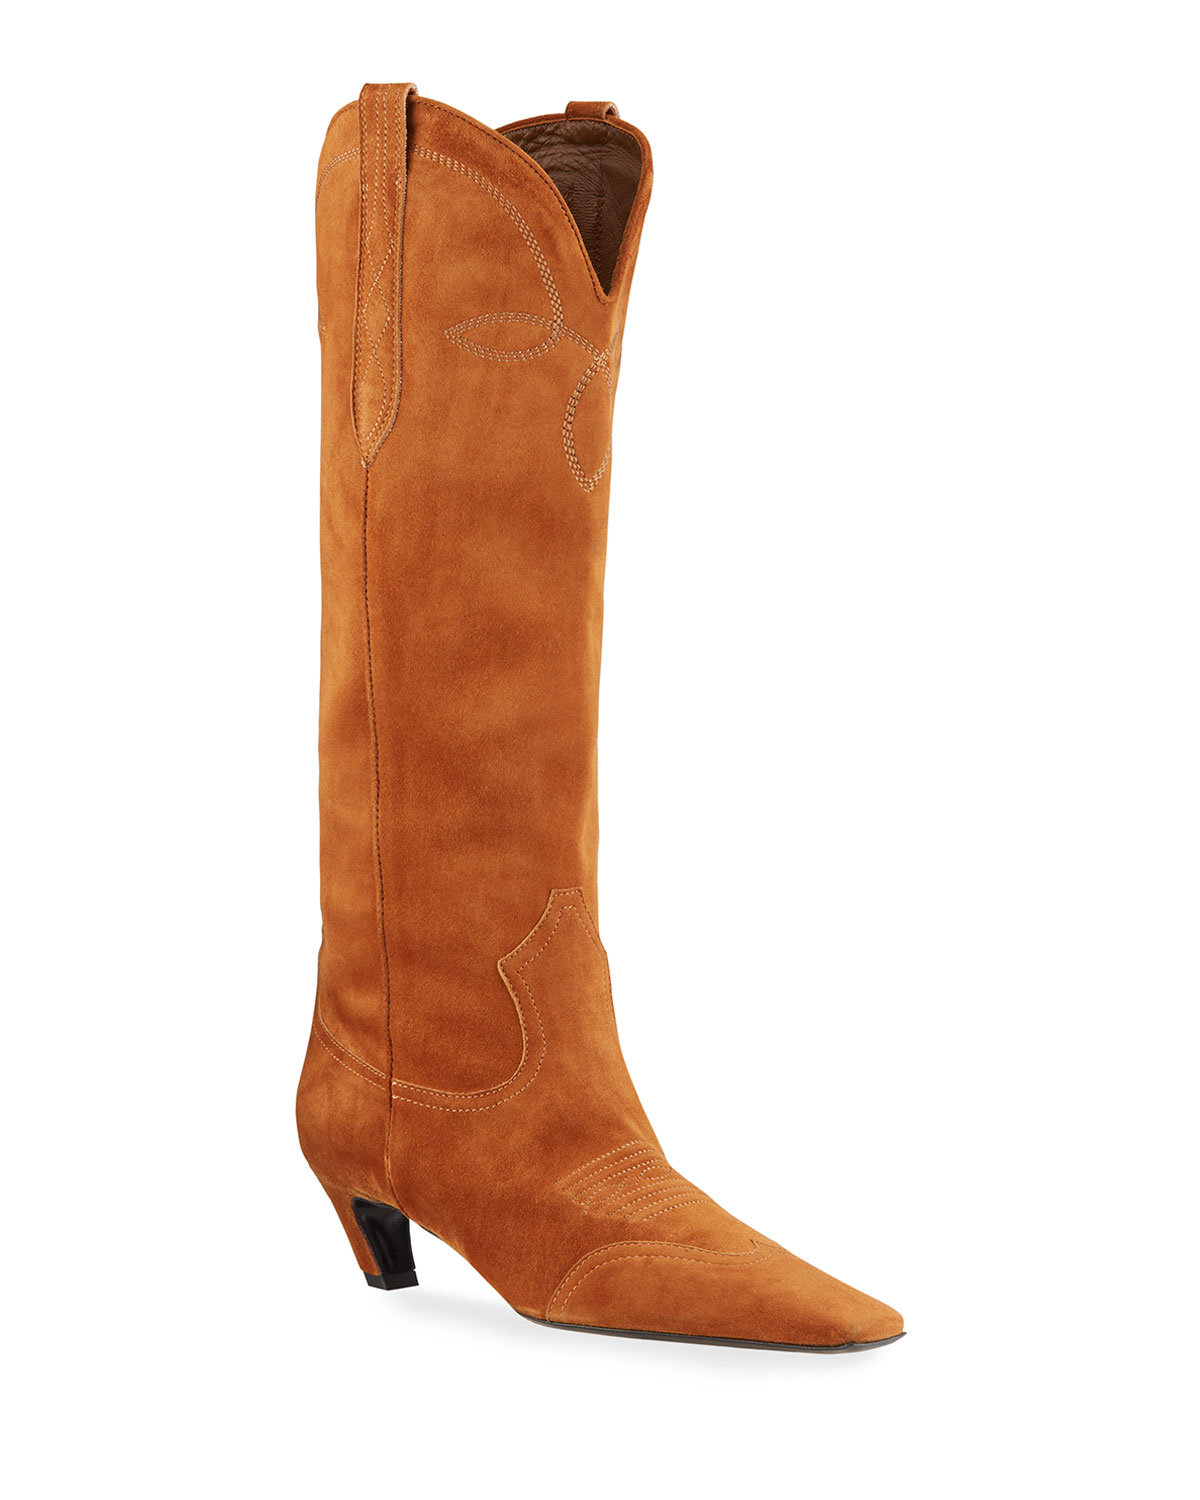 Dallas Western Suede Knee Boots by Khaite, available on neimanmarcus.com for $1380 Olivia Culpo Shoes Exact Product